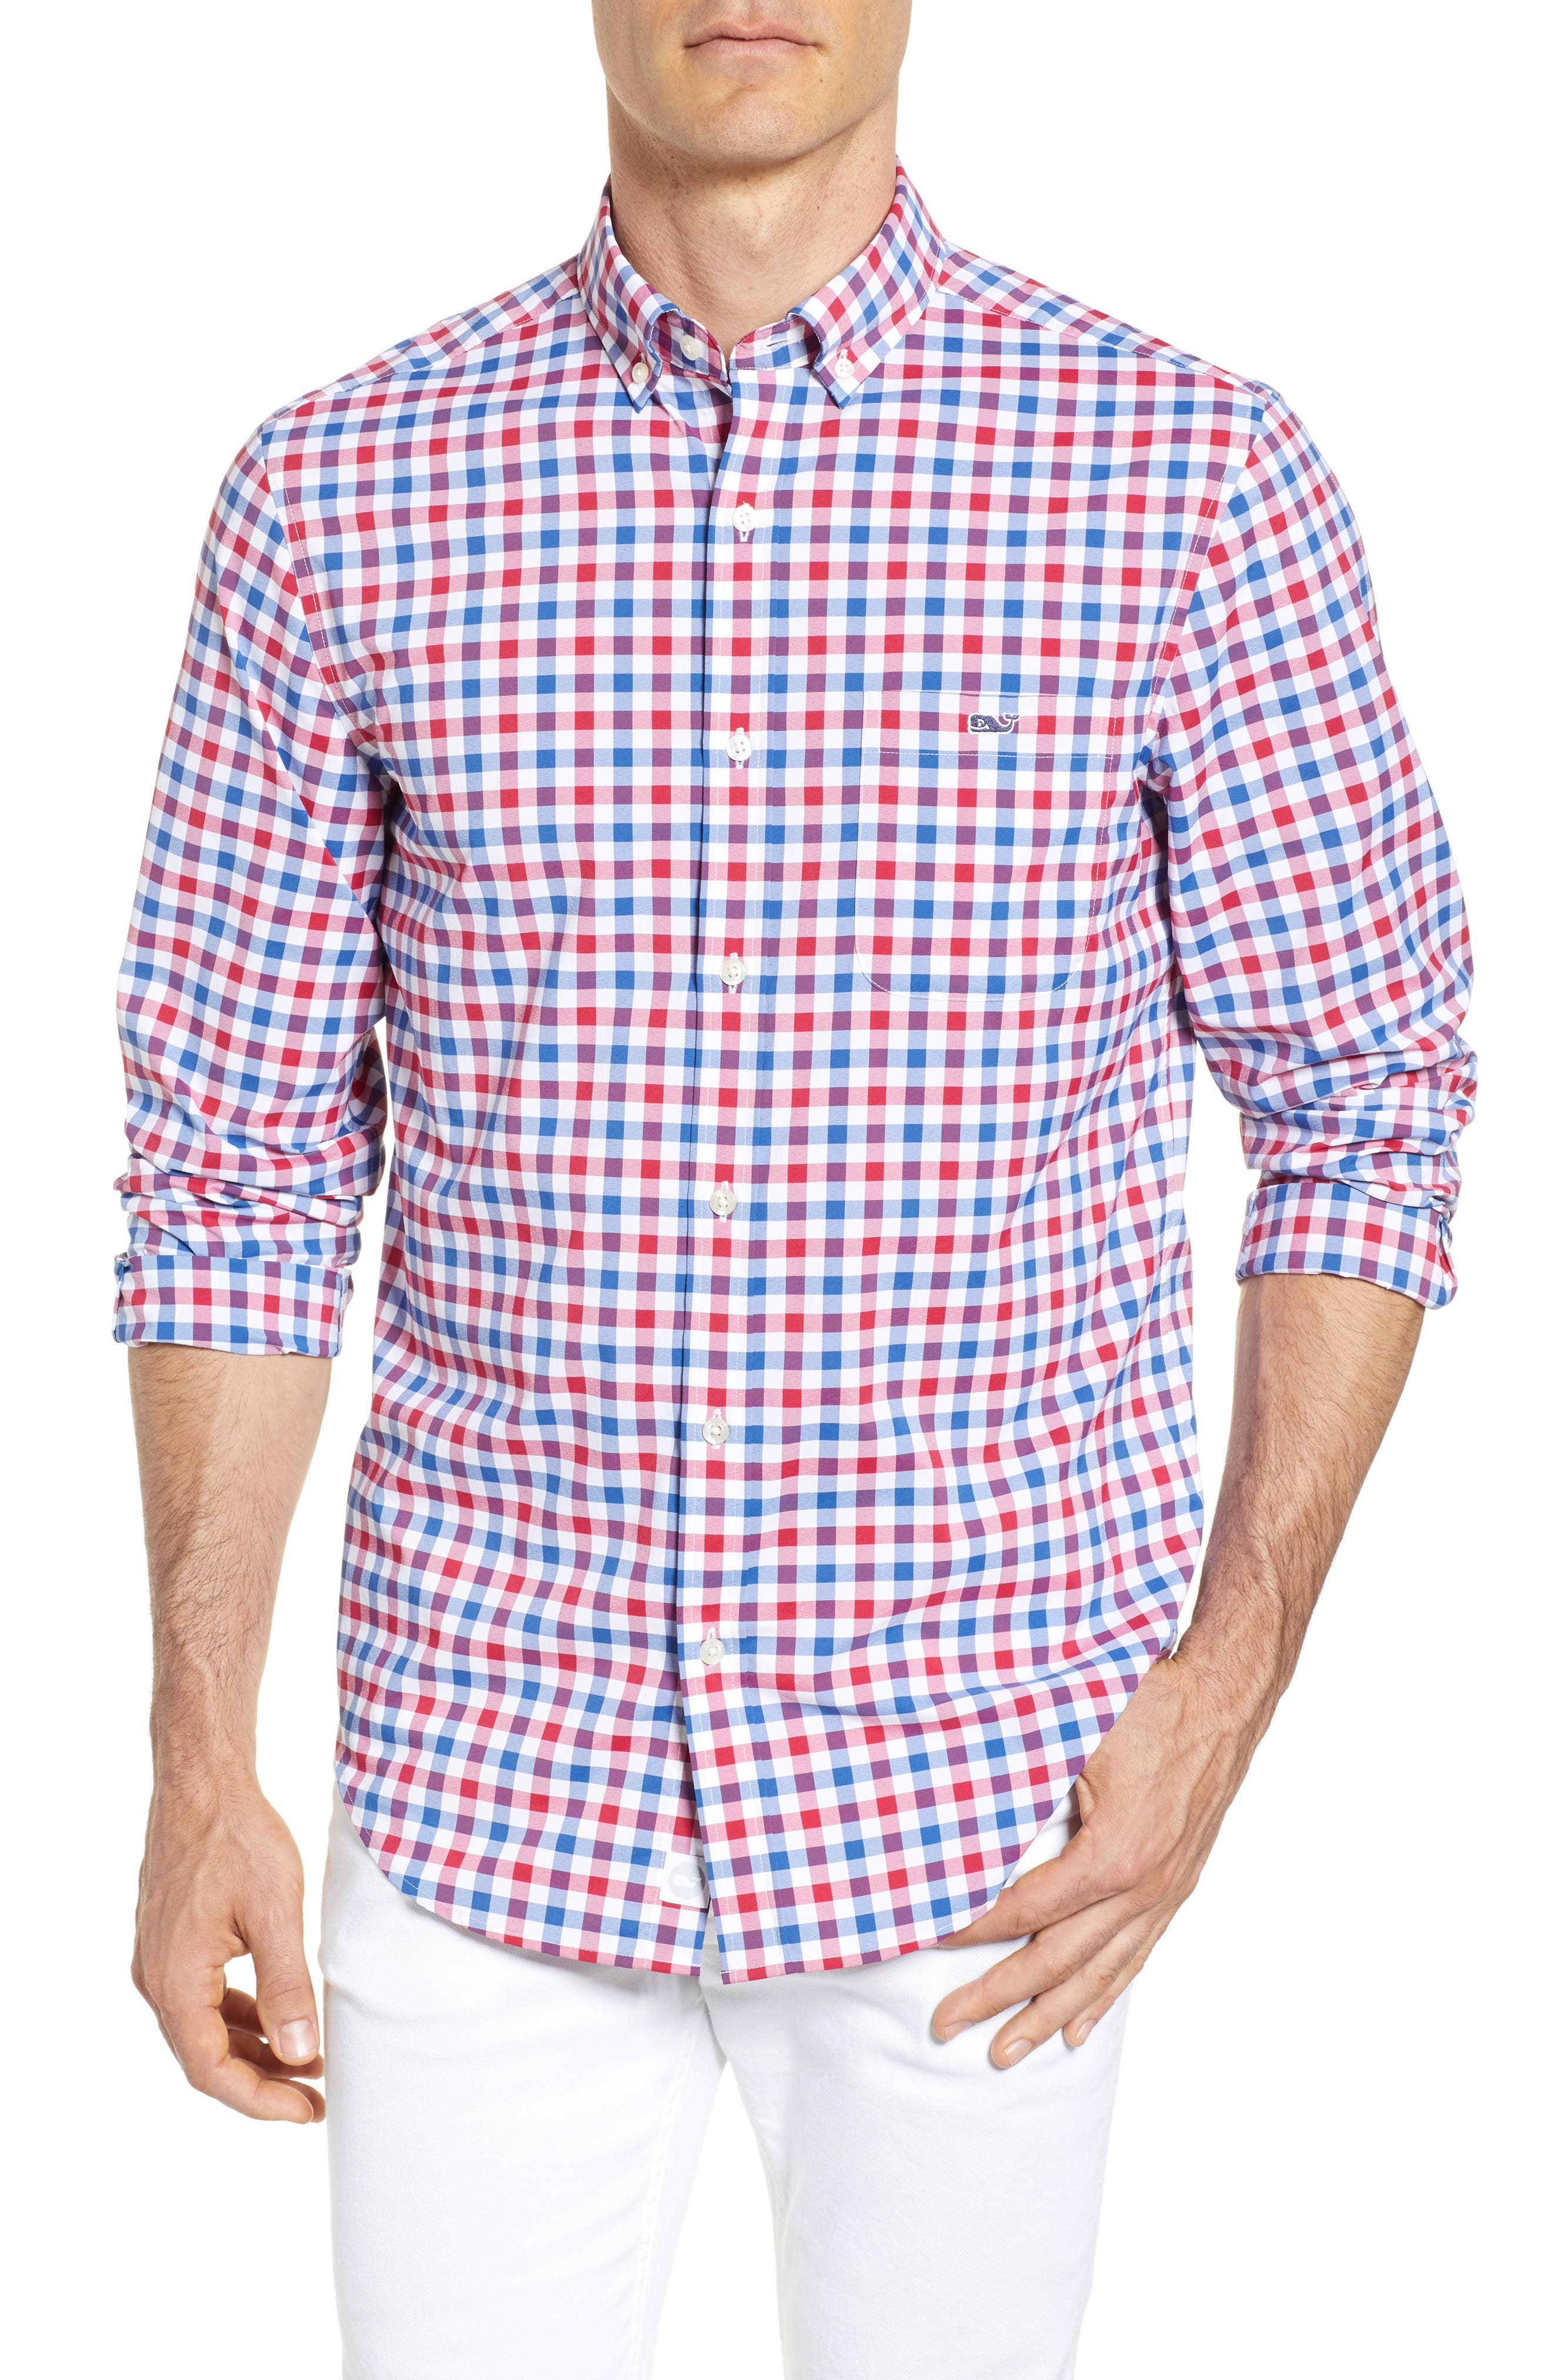 Gull Island Classic Fit Gingham Sport Shirt,                         Main,                         color, Captains Blue